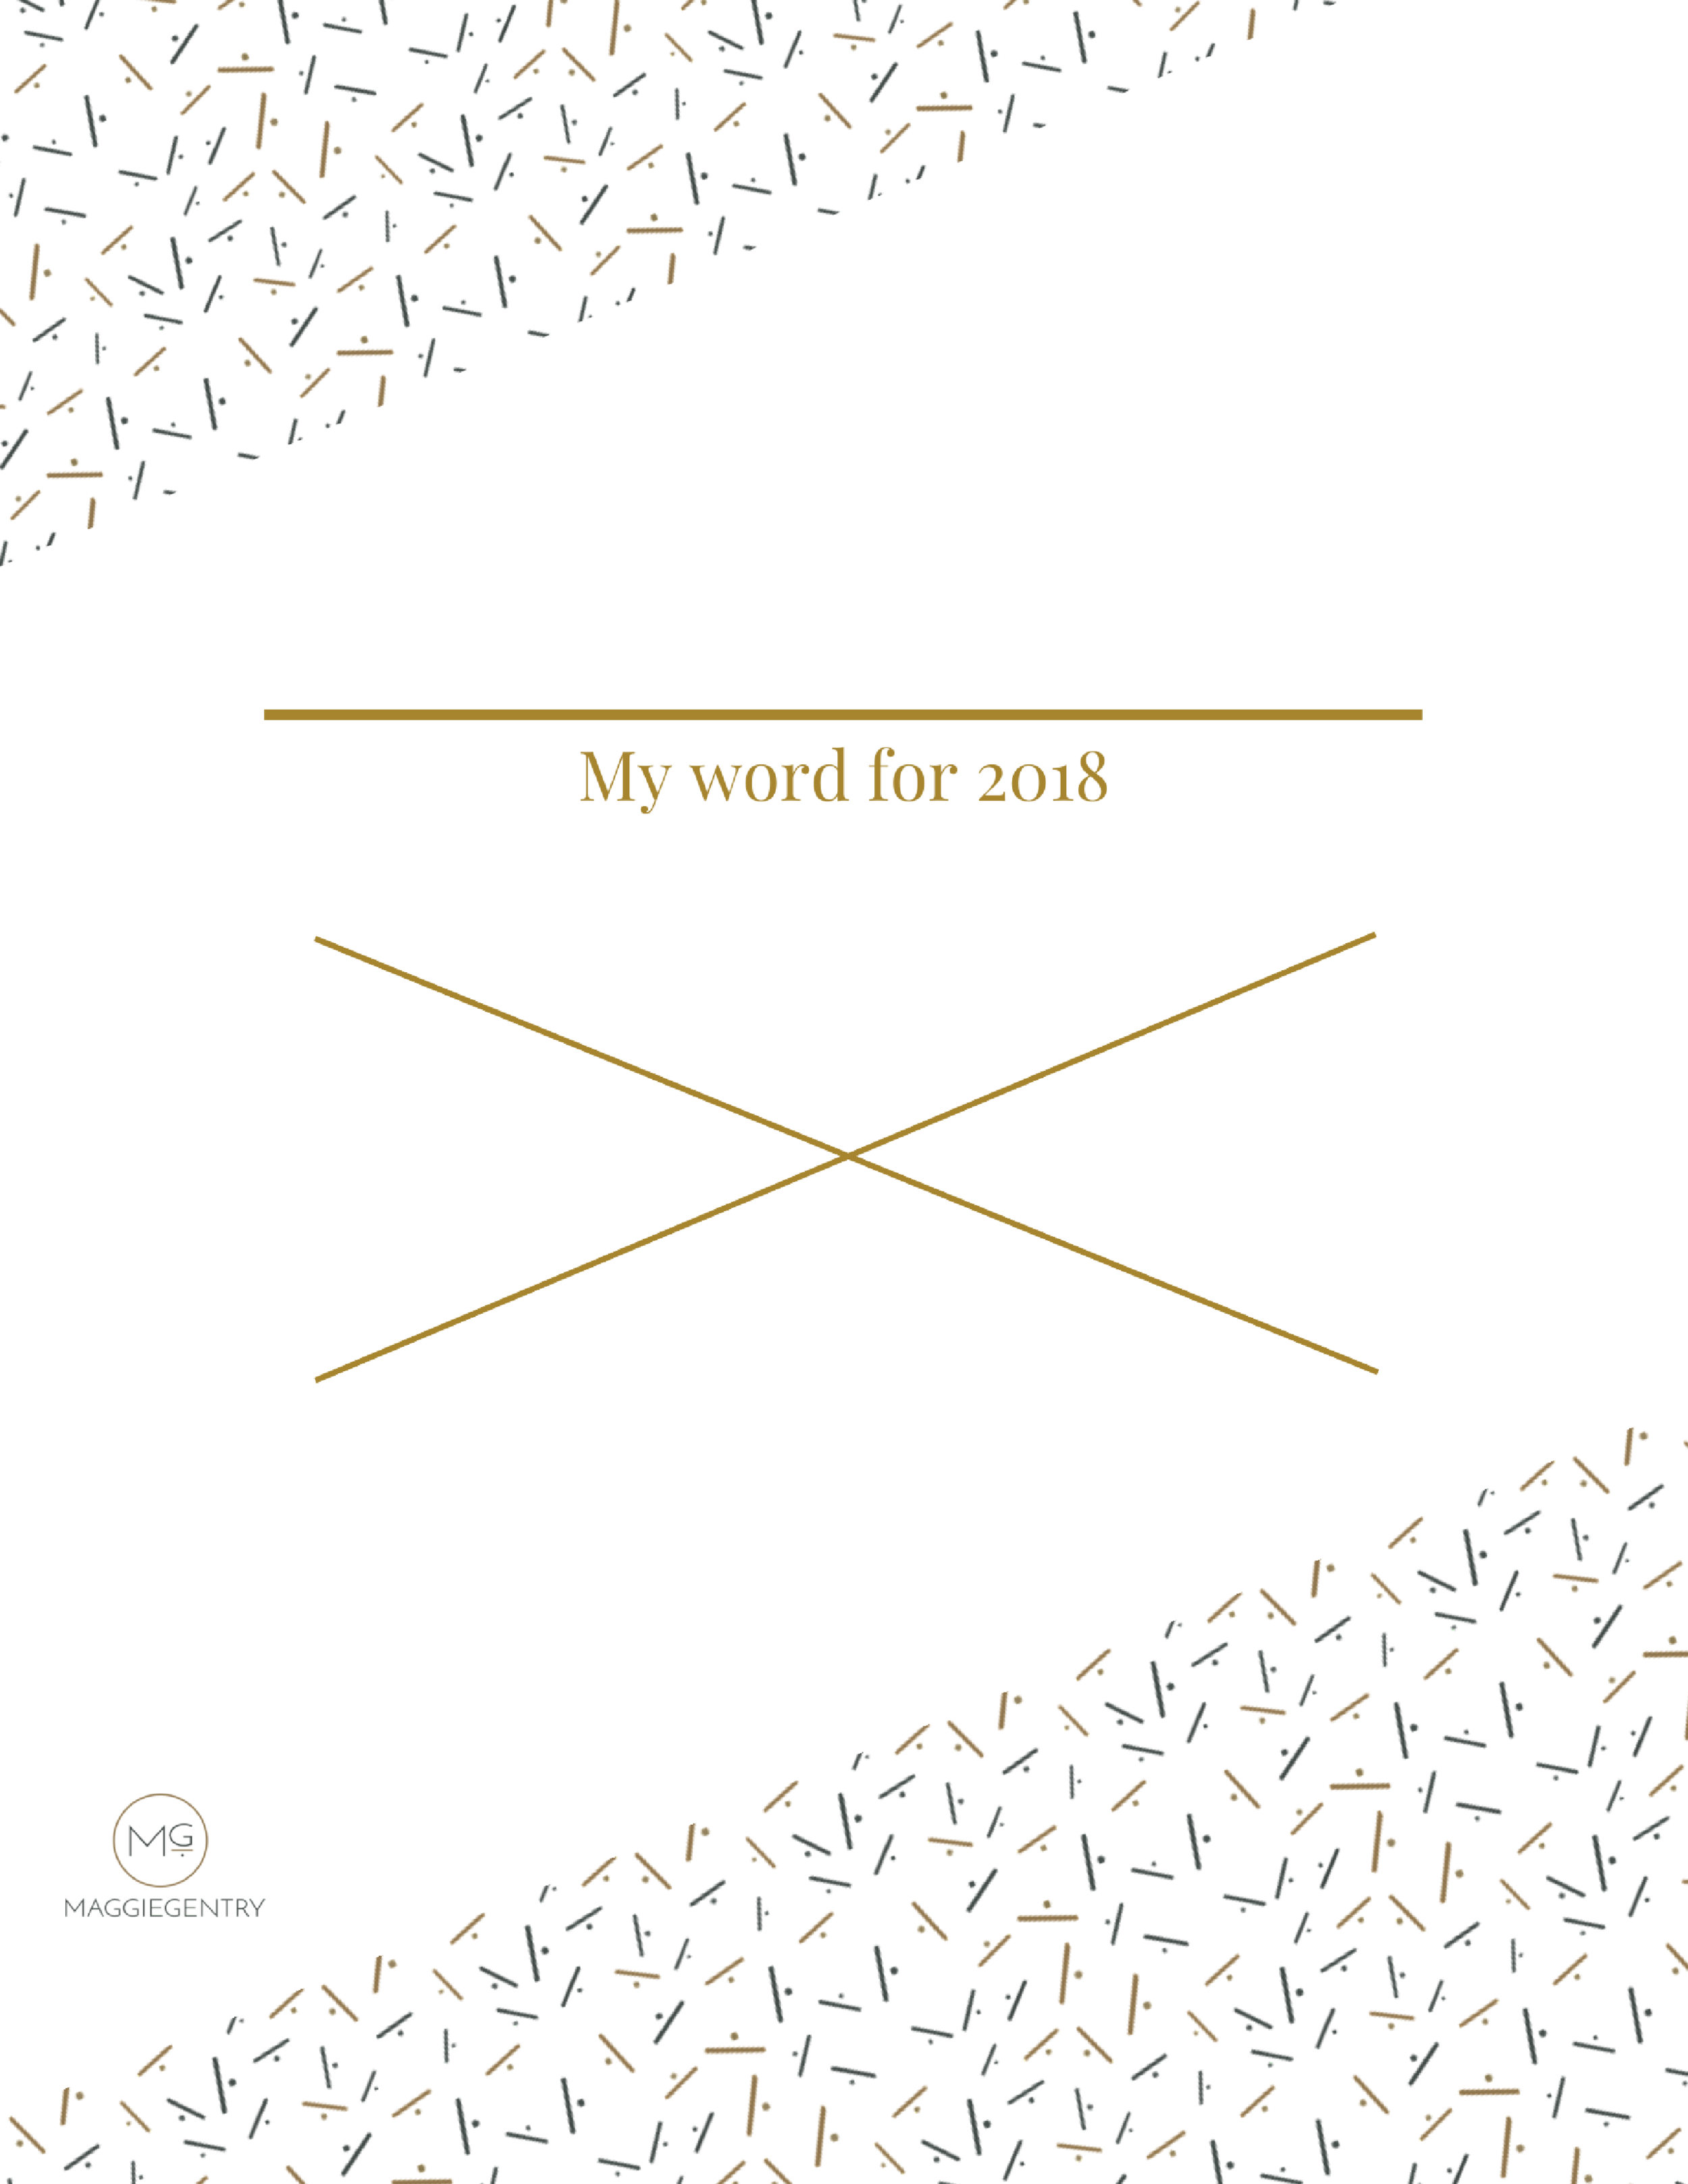 A sign to display your word of the year, plus 4 supporting words to help you stay on track to reach your goals all year long.